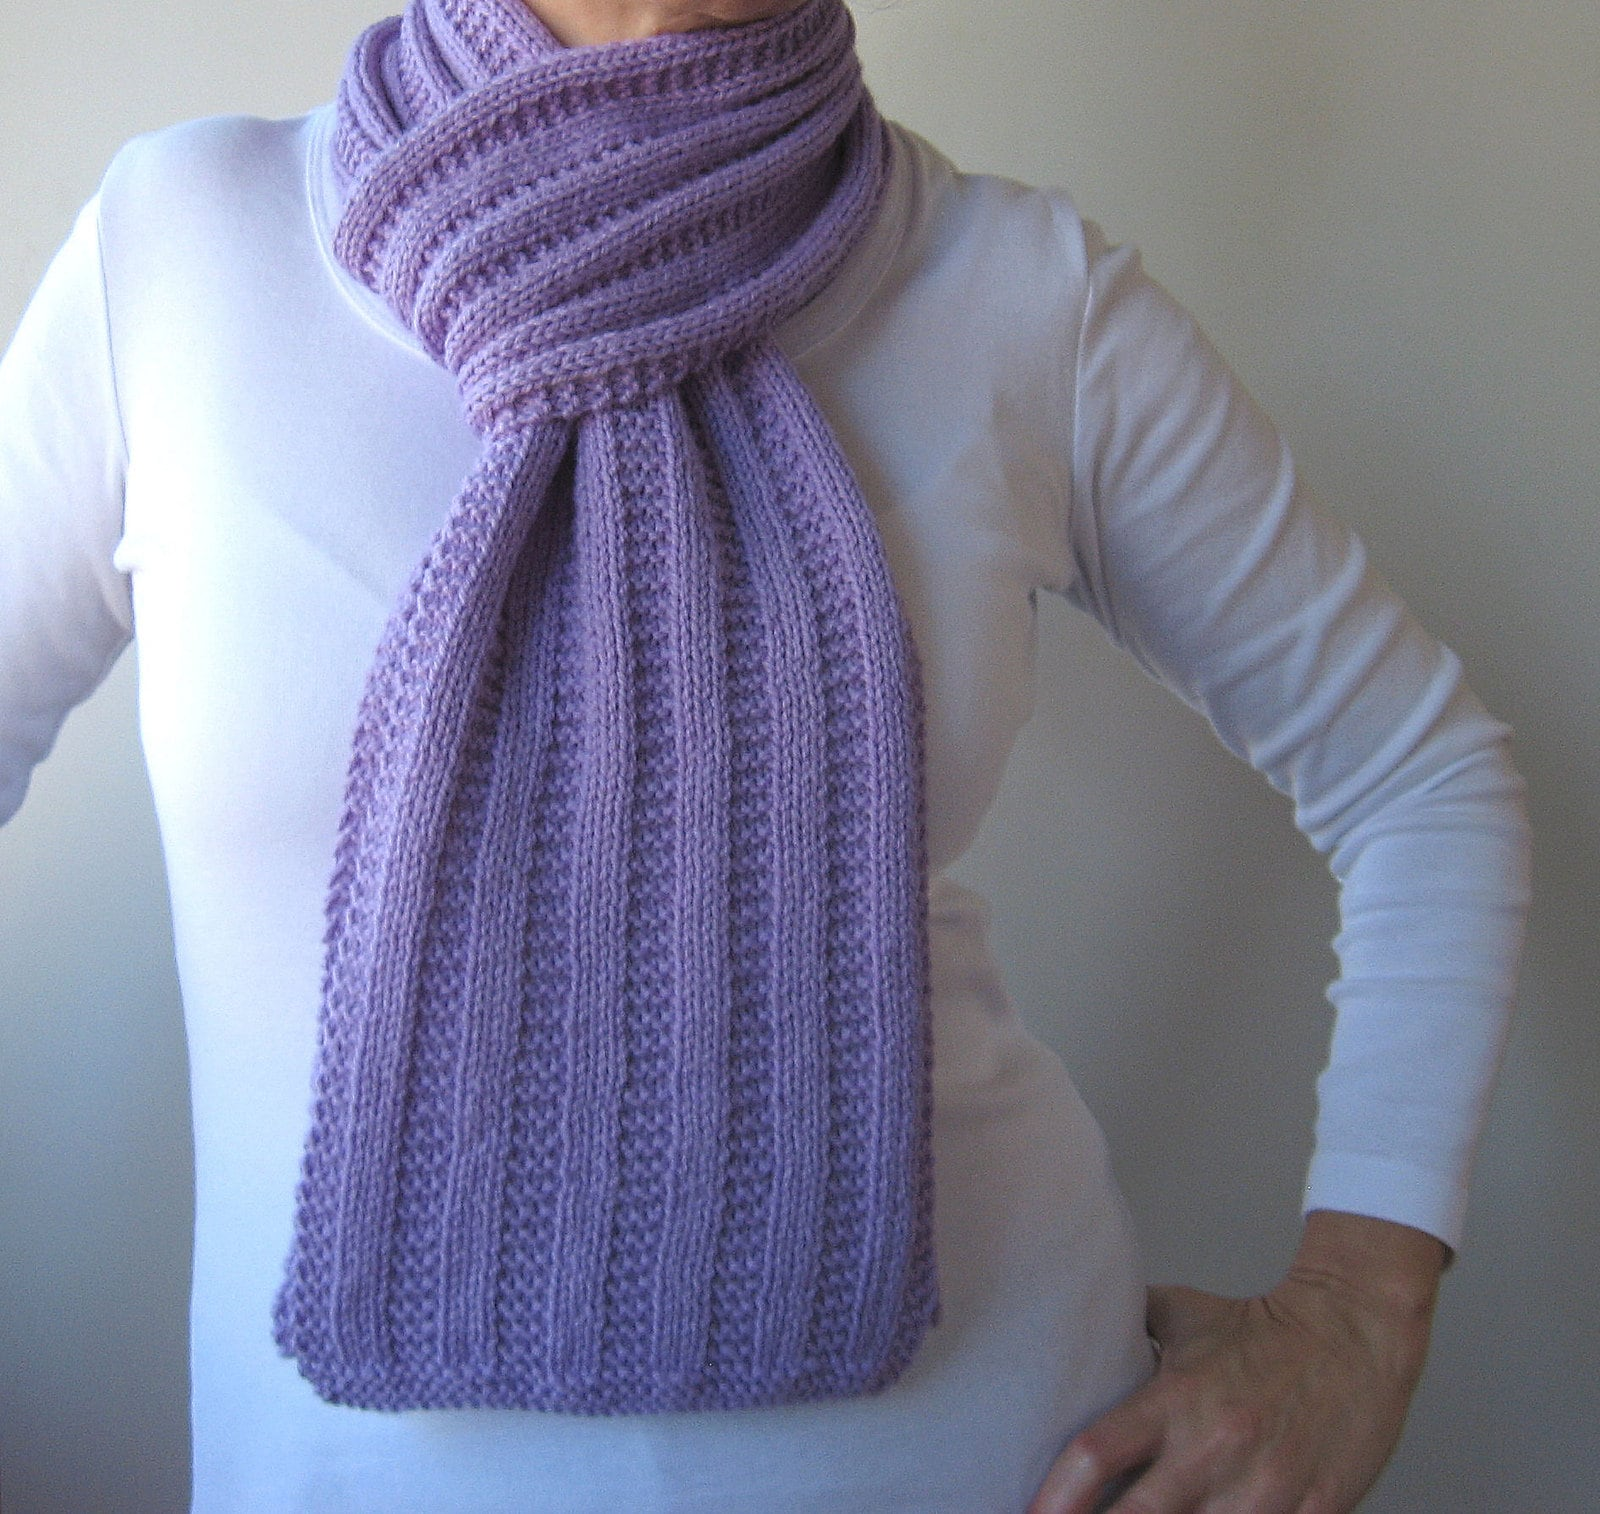 Old Fashioned Ribbed Knit Scarf Pattern Motif - Blanket Knitting ...